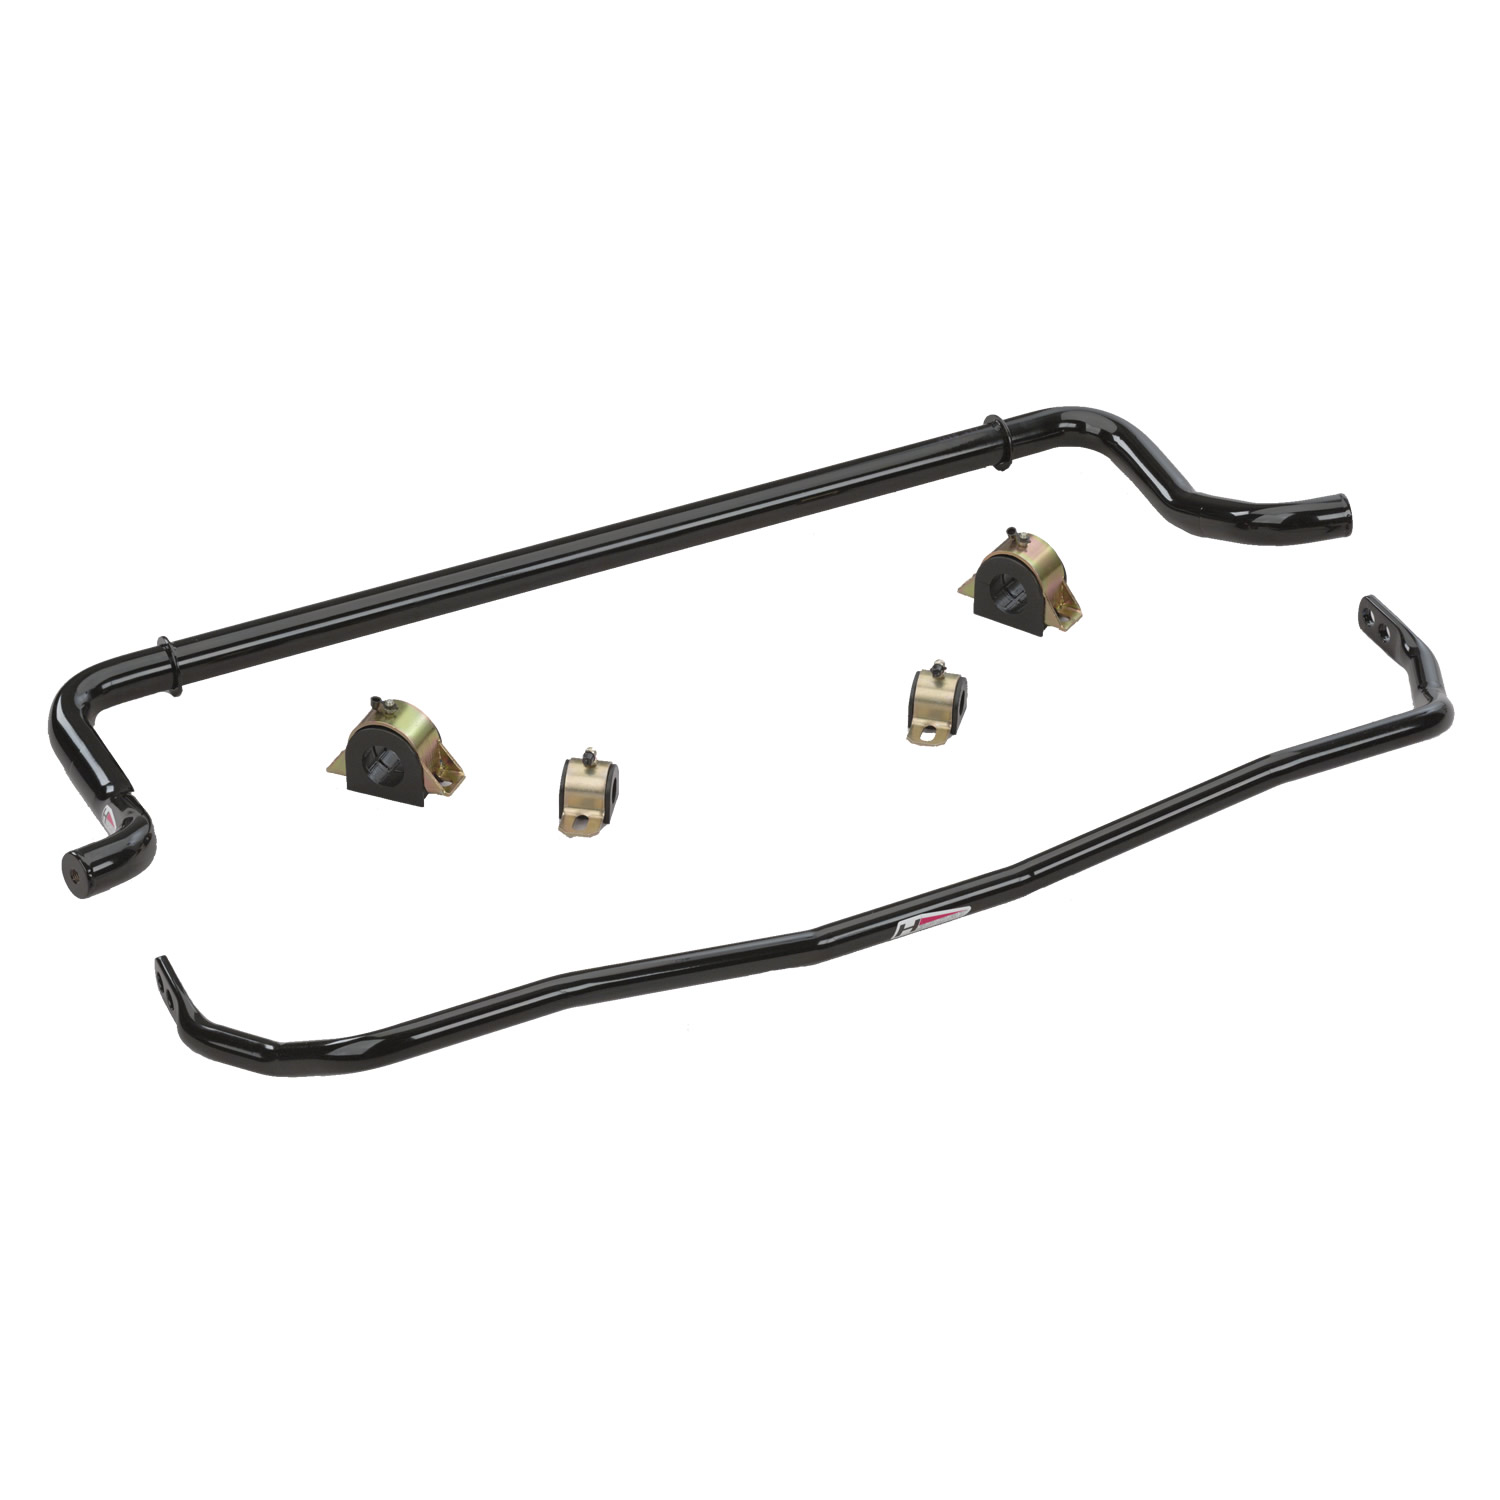 Hotchkis Sport Suspension Systems Parts And Complete Bolt In Packages Blog Archive Audi B6